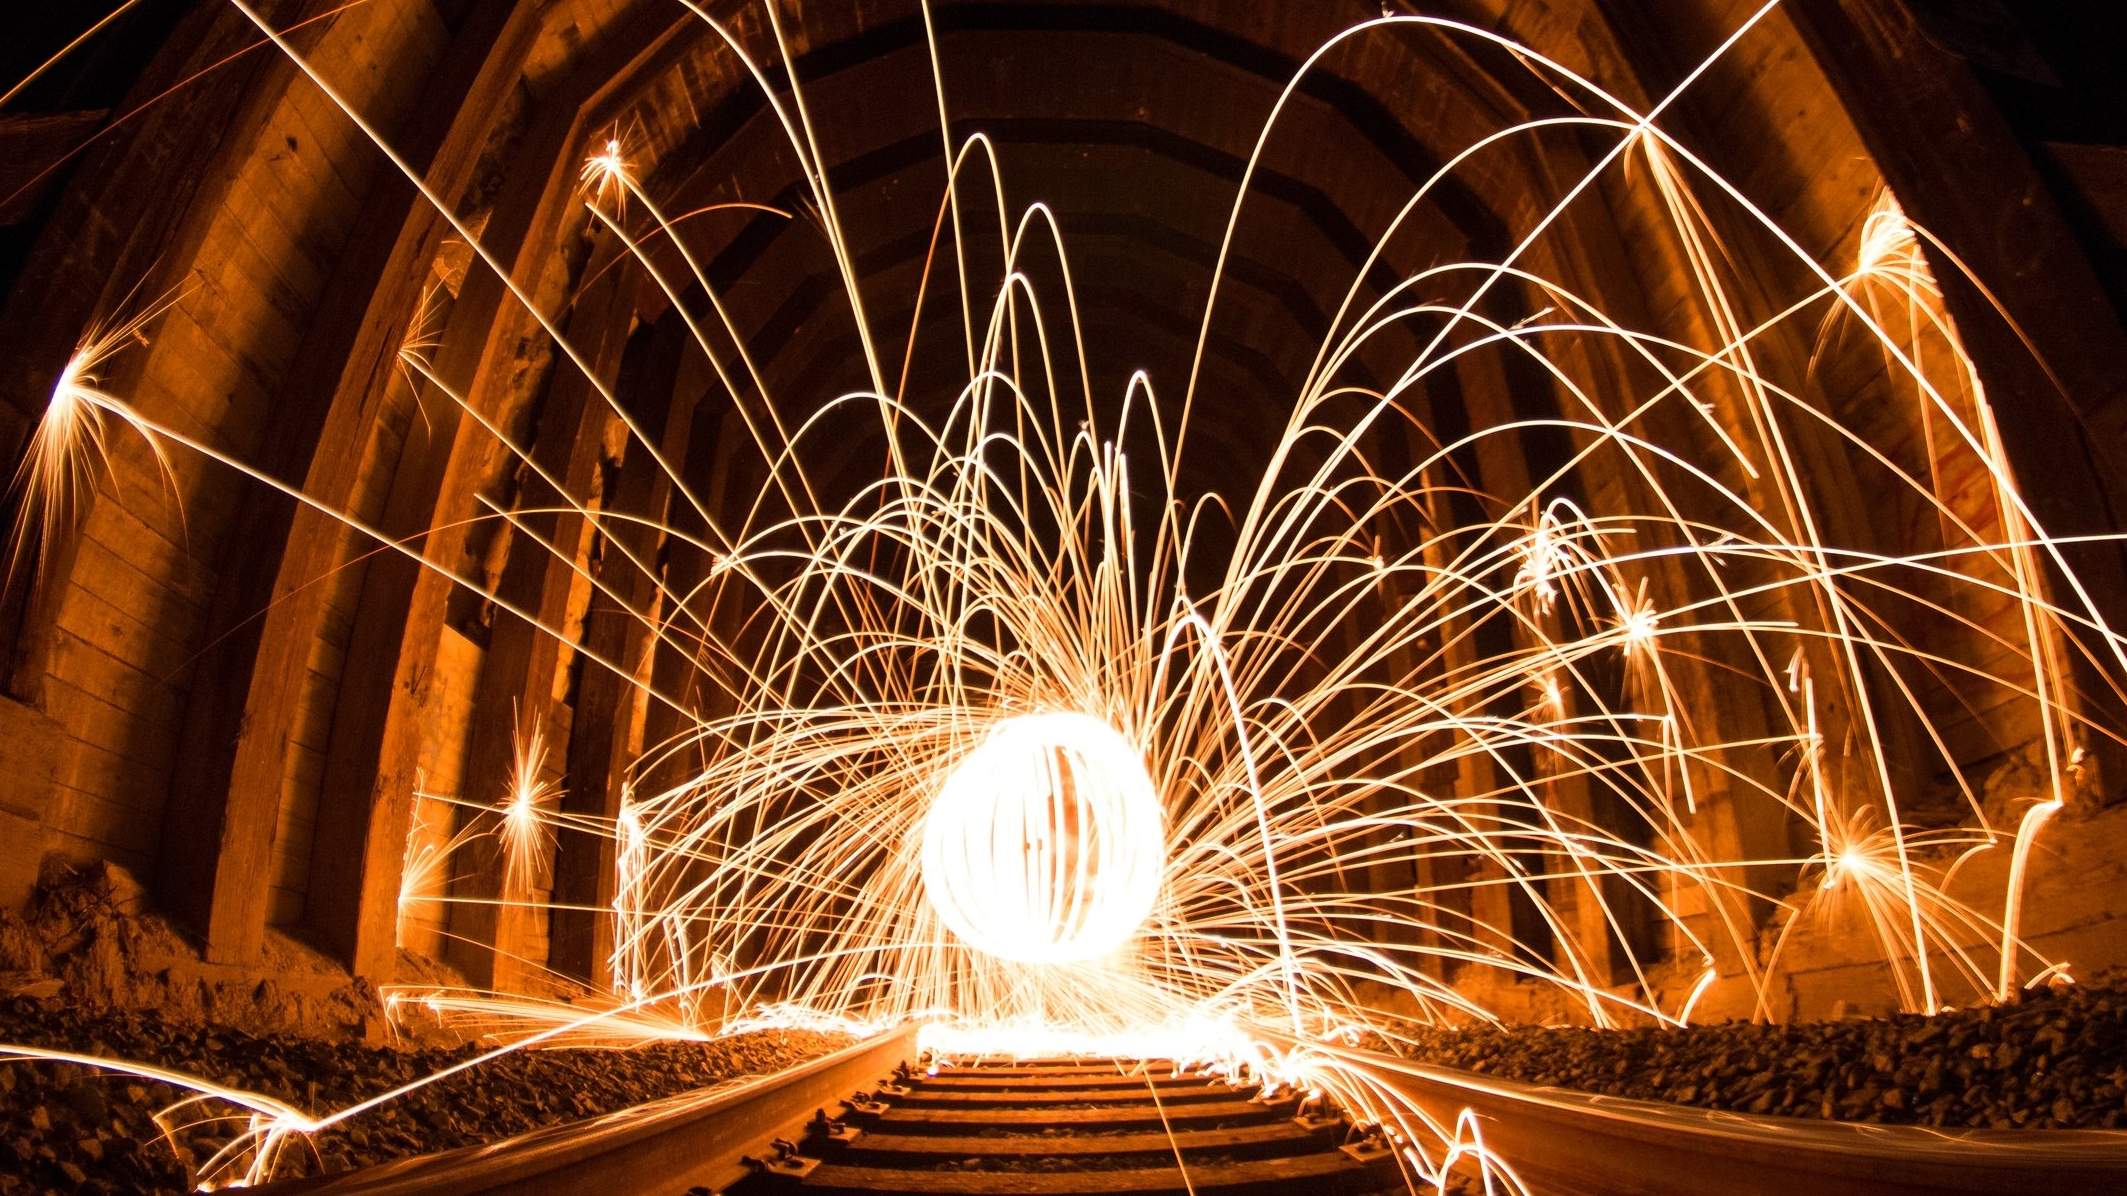 Throwing off sparks